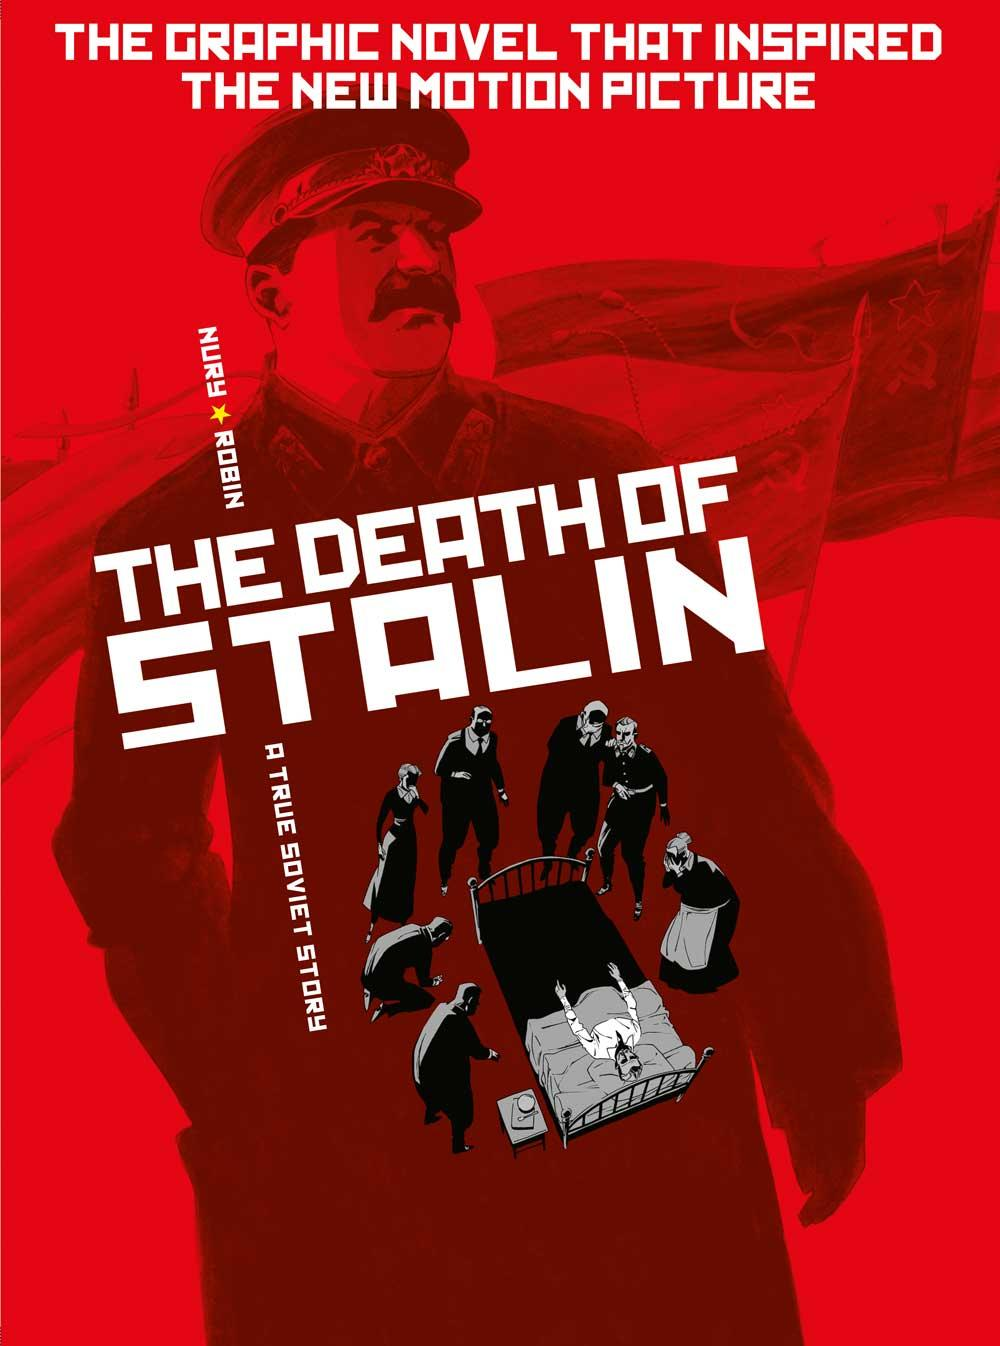 The Death of Stalin Graphic Novel Review: Paranoia, Betrayal, and Insanity